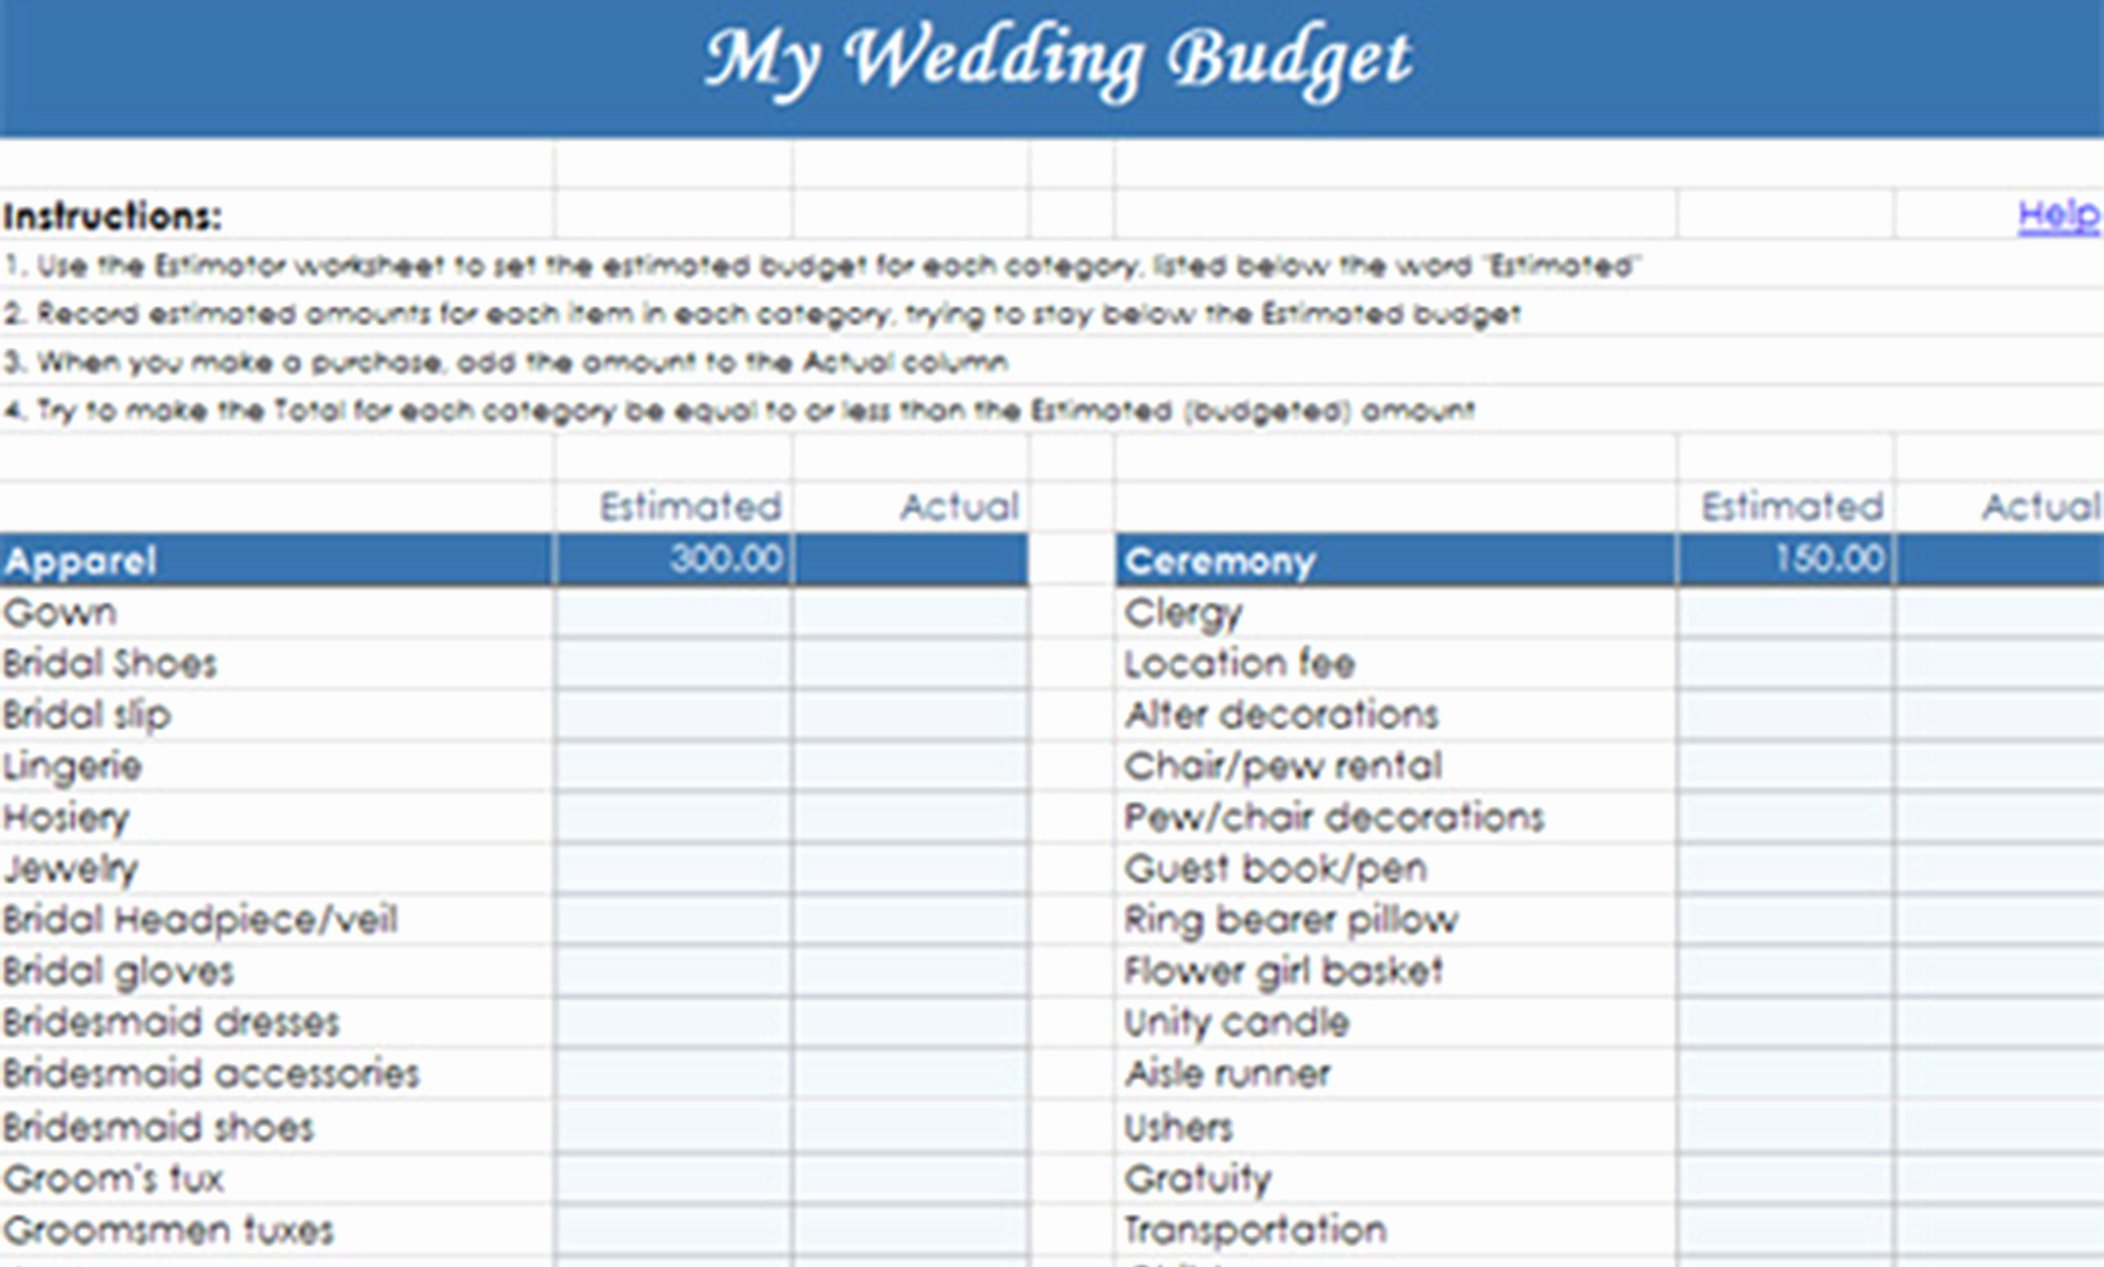 Wedding Planning Budget Template Inspirational 6 Tips to Help Save Money On Your Wedding – Las Vegas